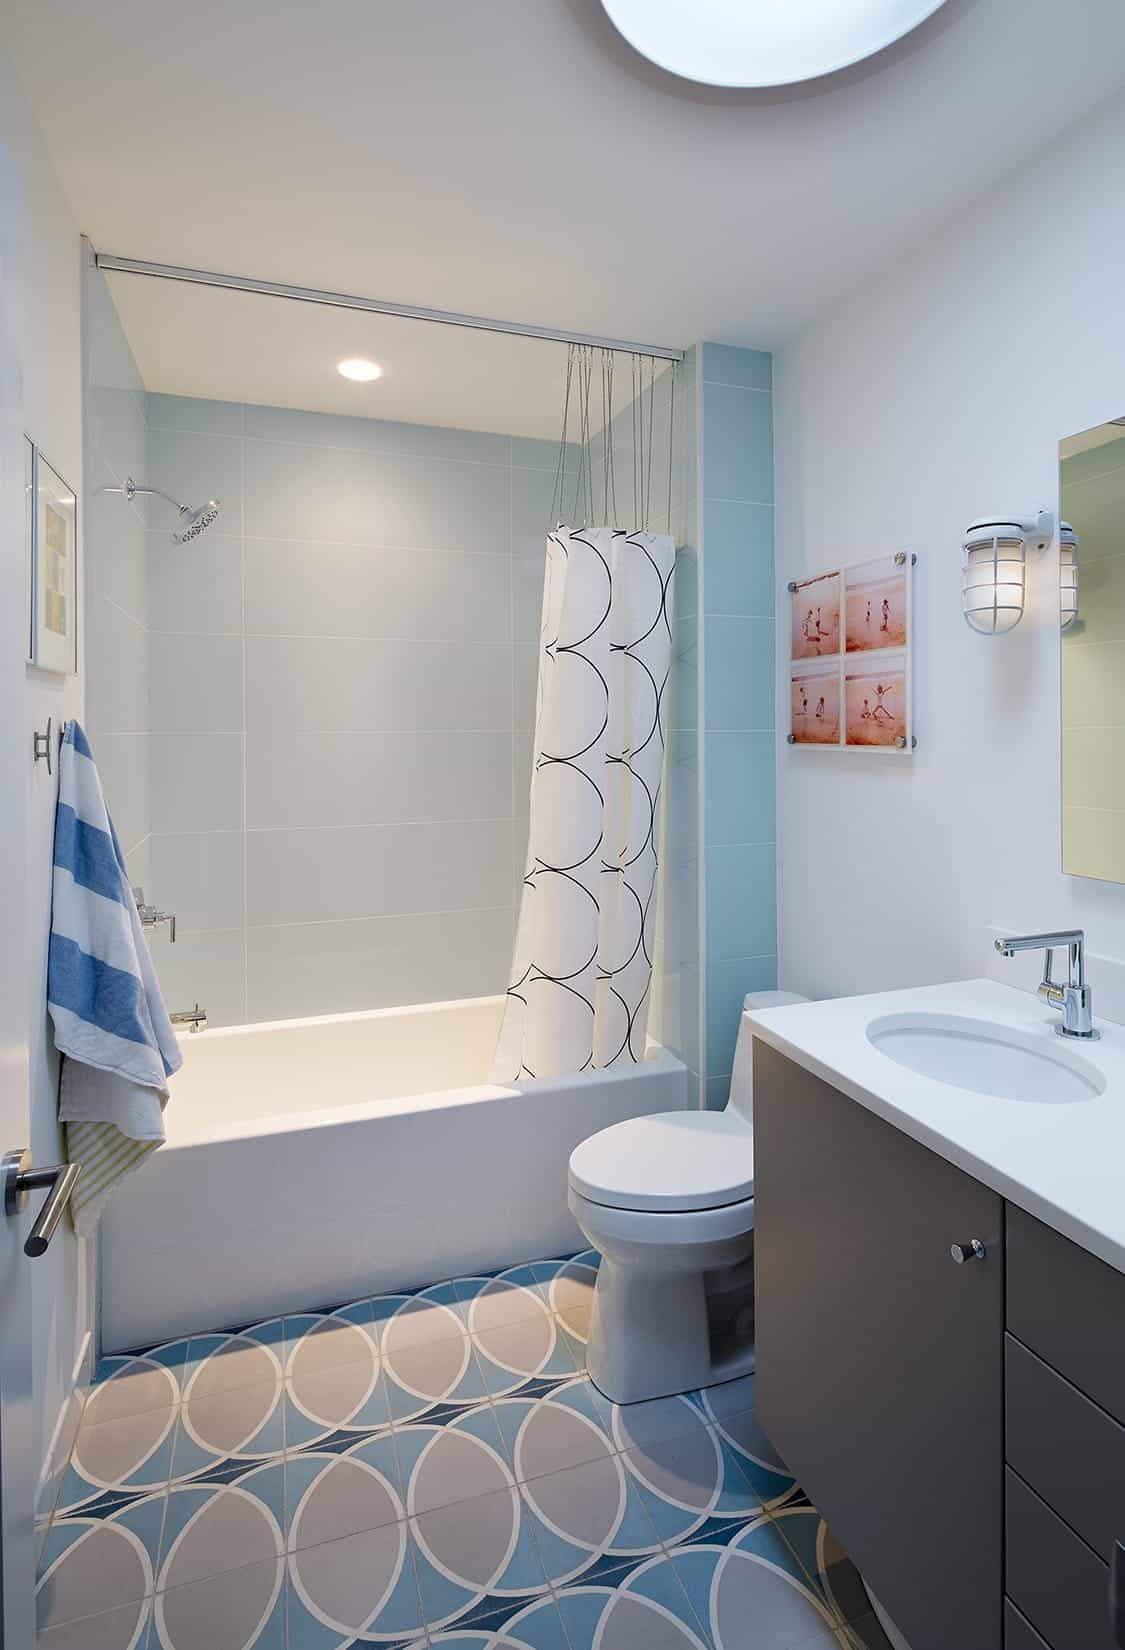 Serene Bathroom With Circular Pattern Tile Floor (Image 16 of 20)